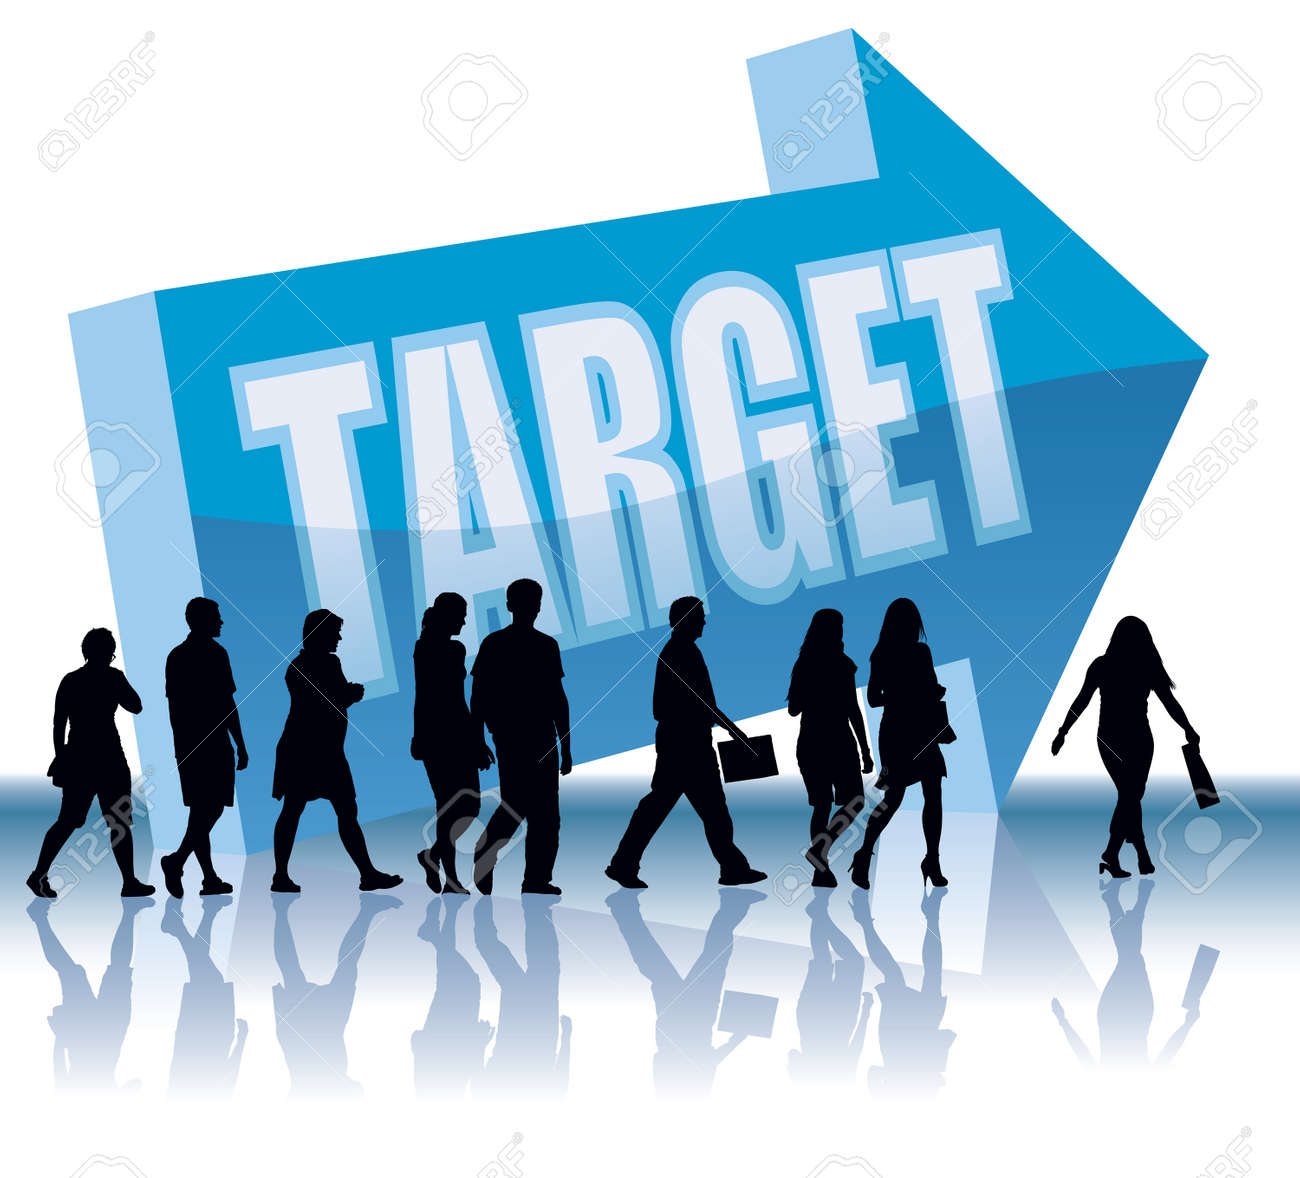 People are going to a direction - Target. Stock Vector - 3876063